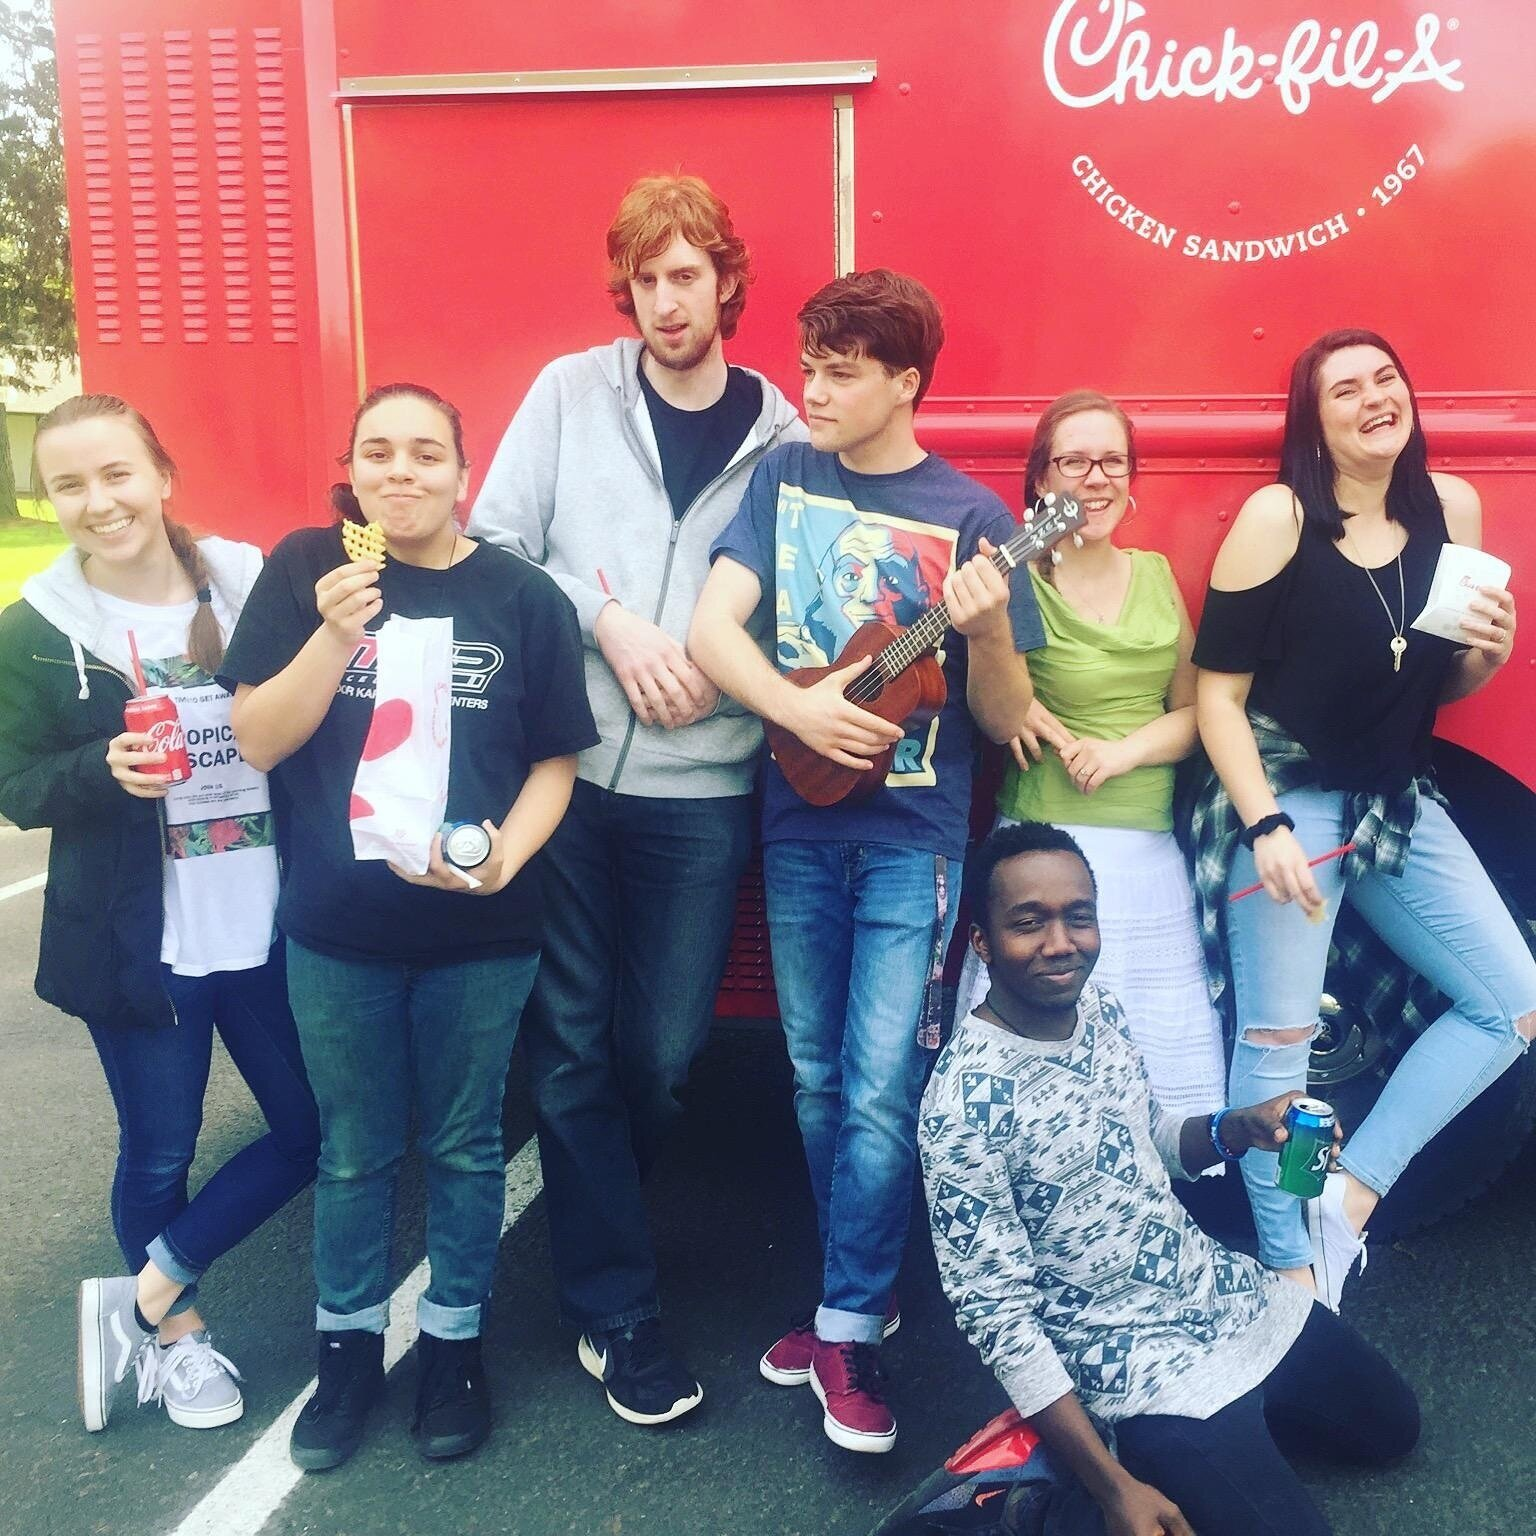 CHICK-FIL-A THURSDAY - Every Thursday, the Chick-Fil-A Food Truck parks across the street in the church parking lot! If you are around Thursday for lunch, you should join us!